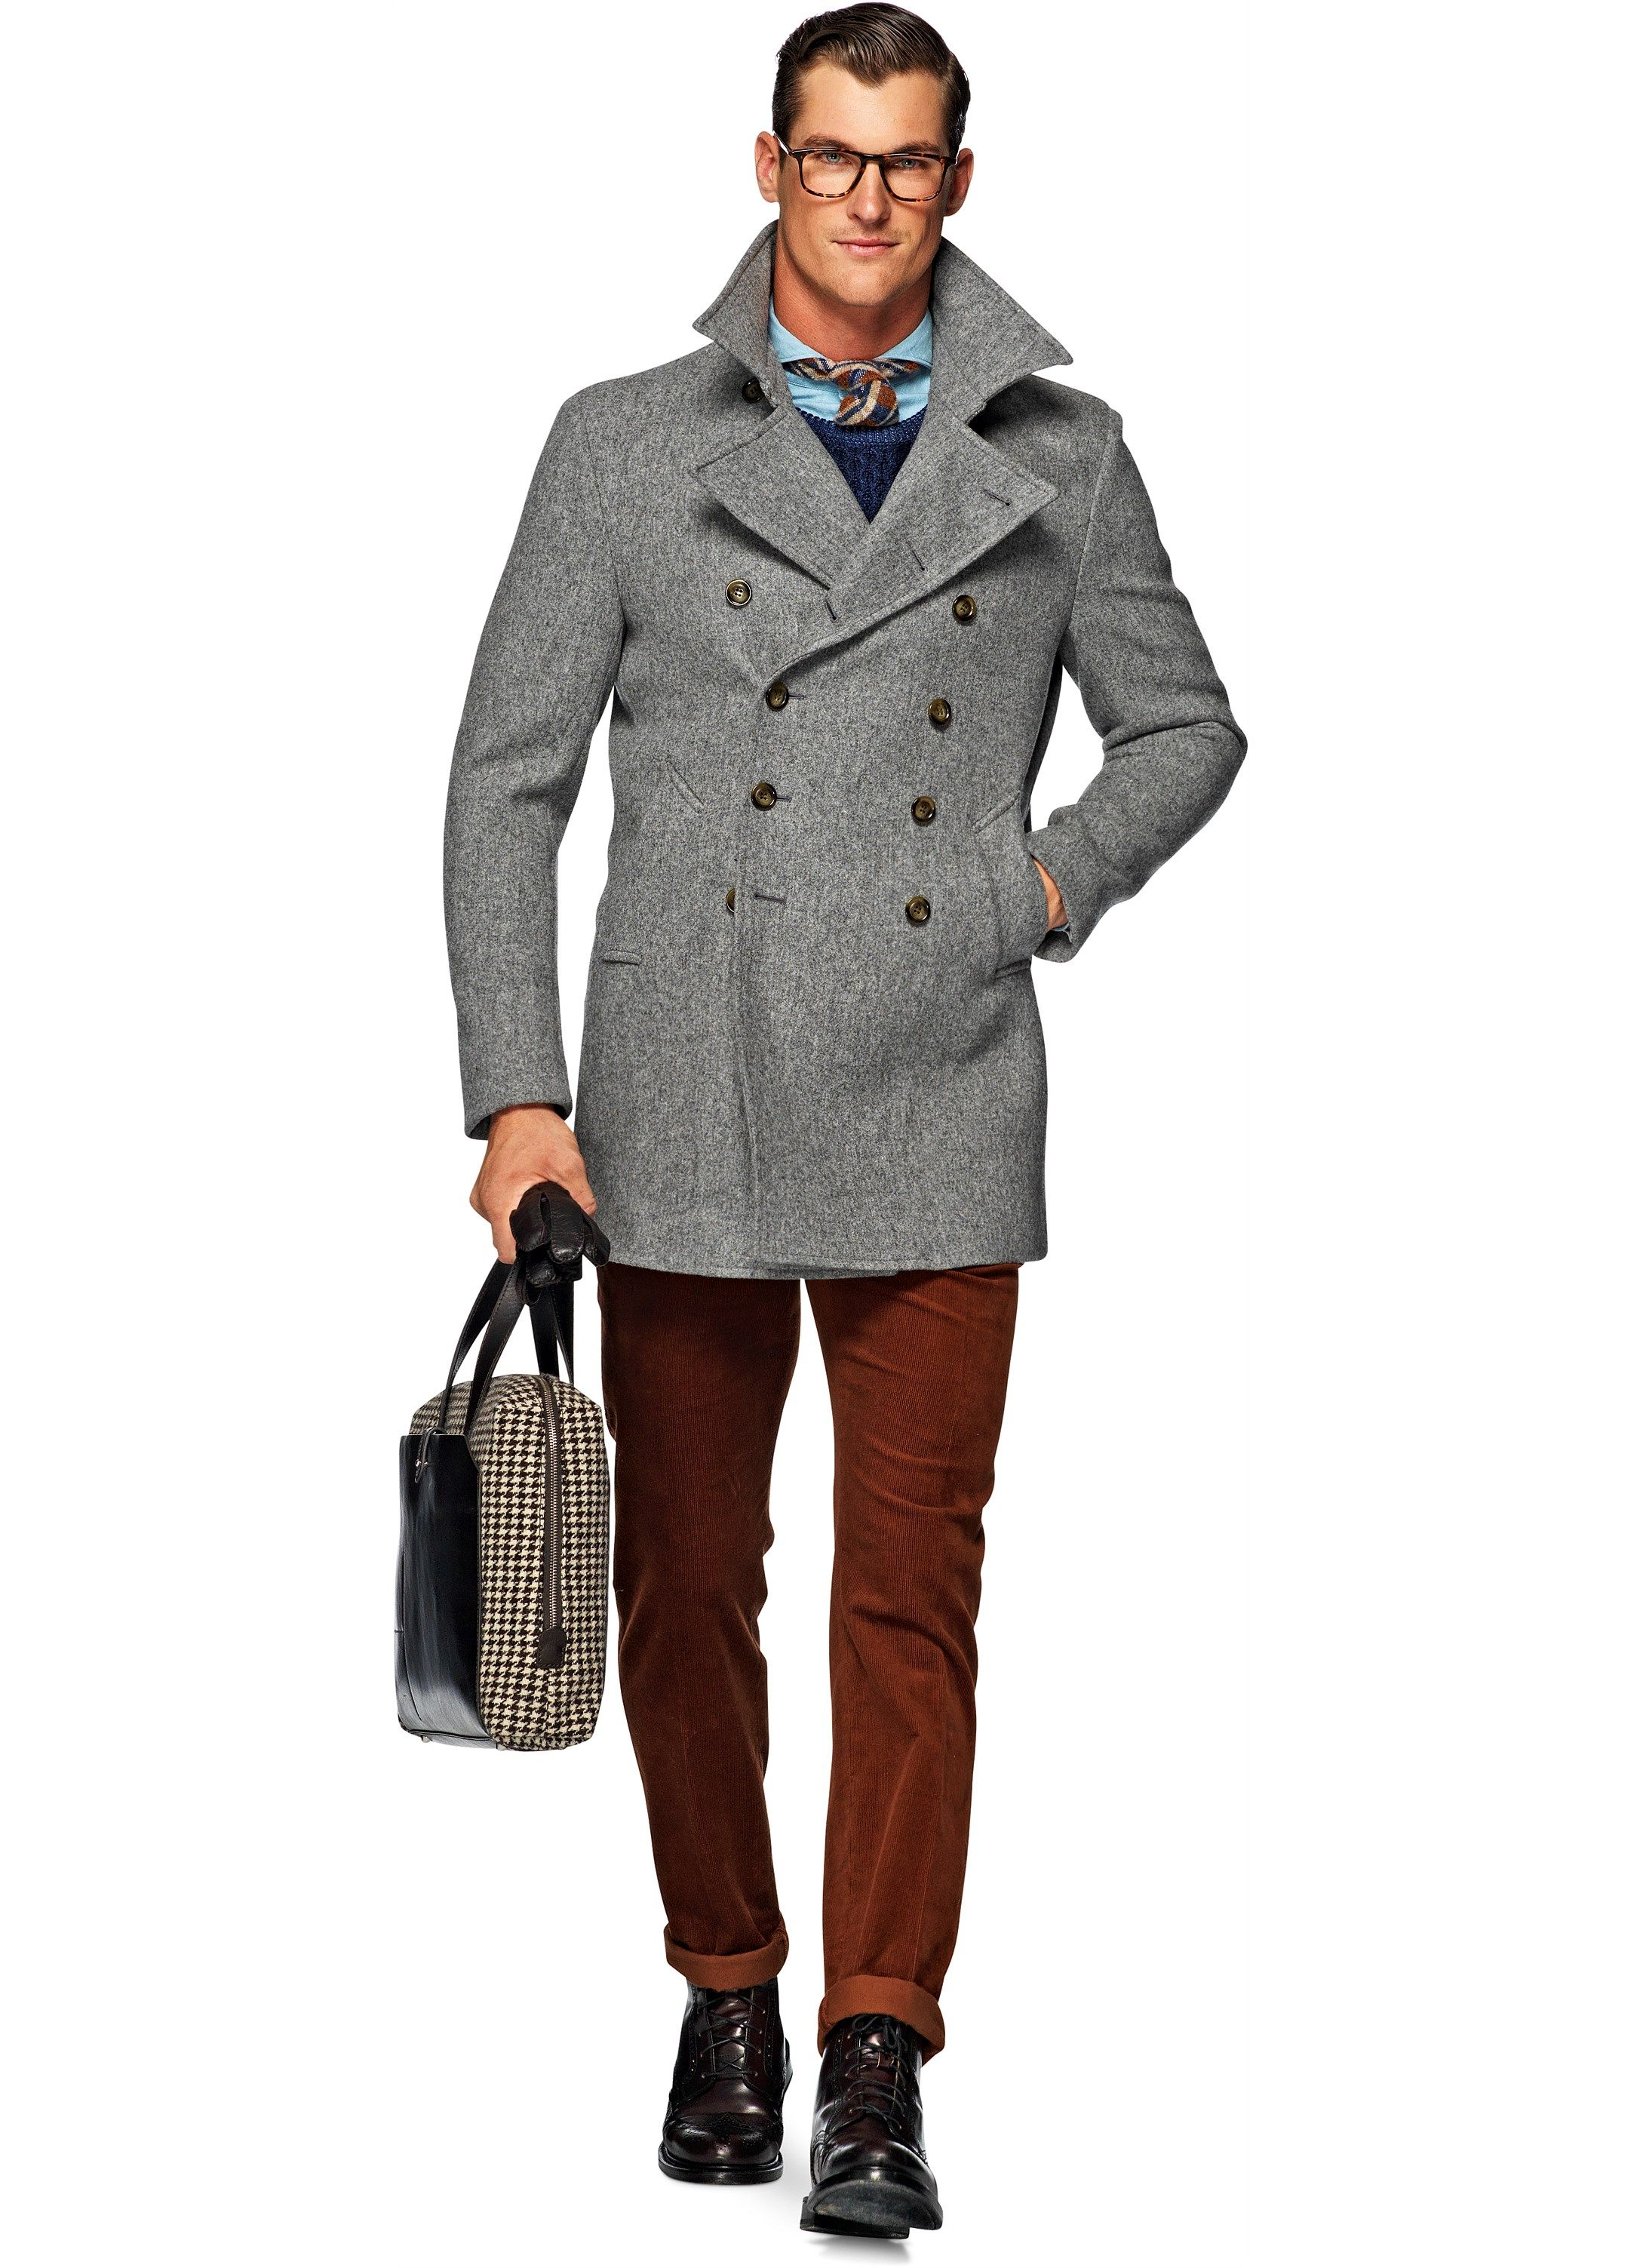 new selection affordable price latest design suitsupply | Clothing | Coat, Fashion, Grey outfit